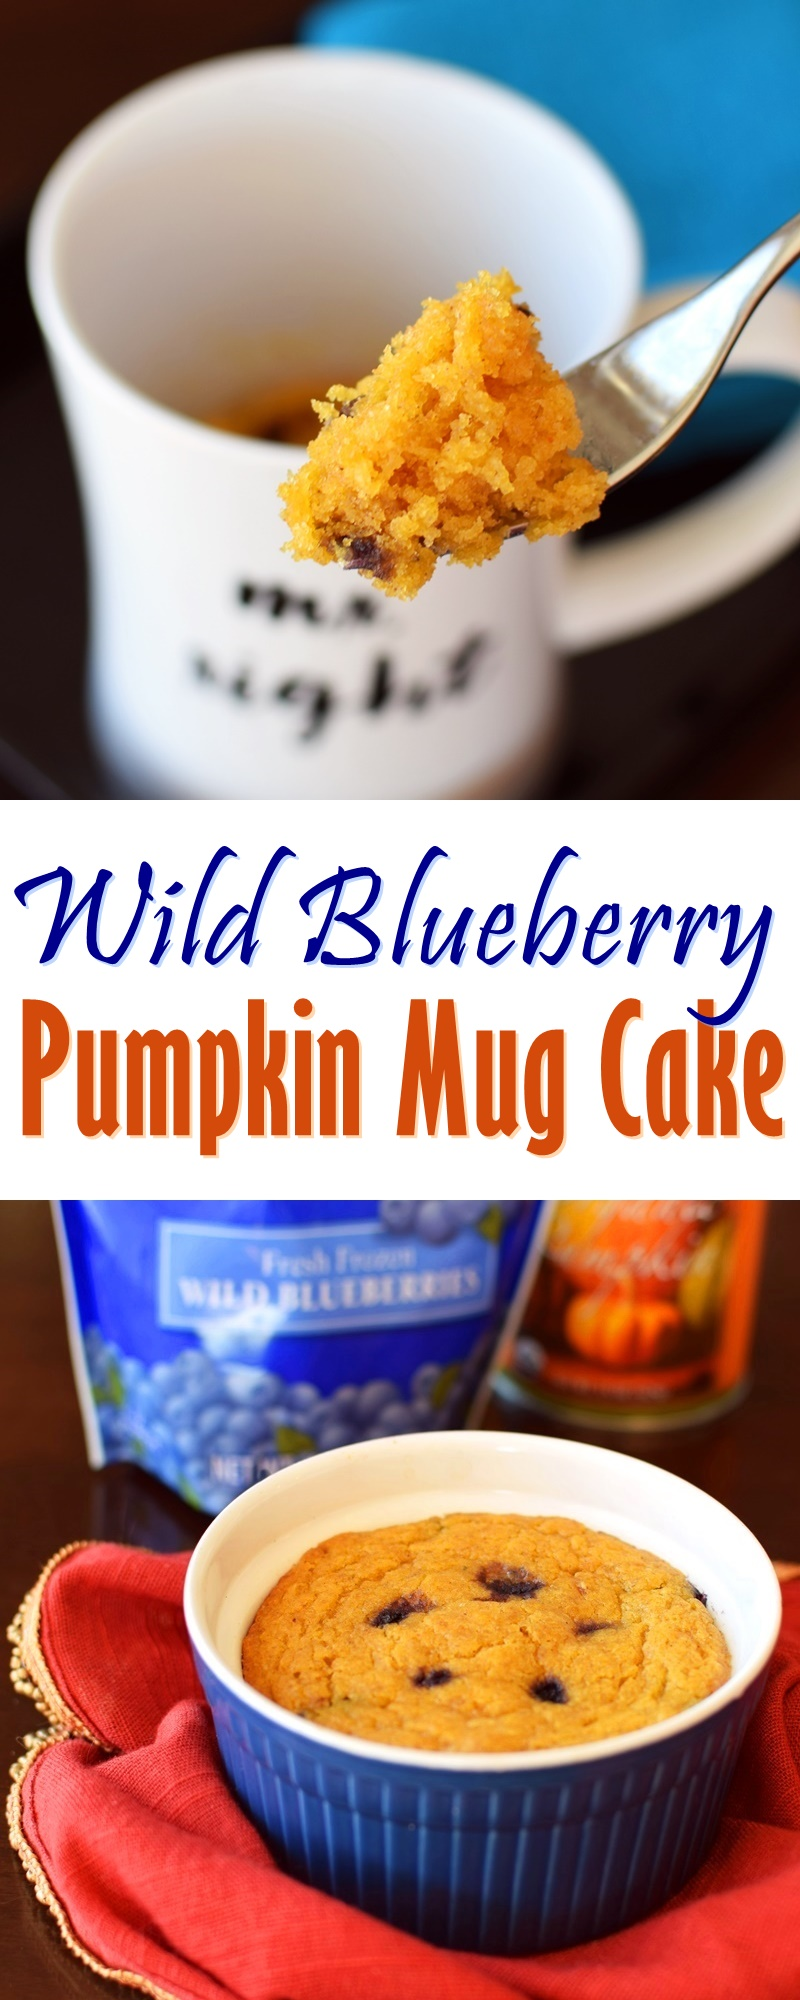 Wild Blueberry Pumpkin Mug Cake Recipe (Vegan + Gluten-Free Optional)